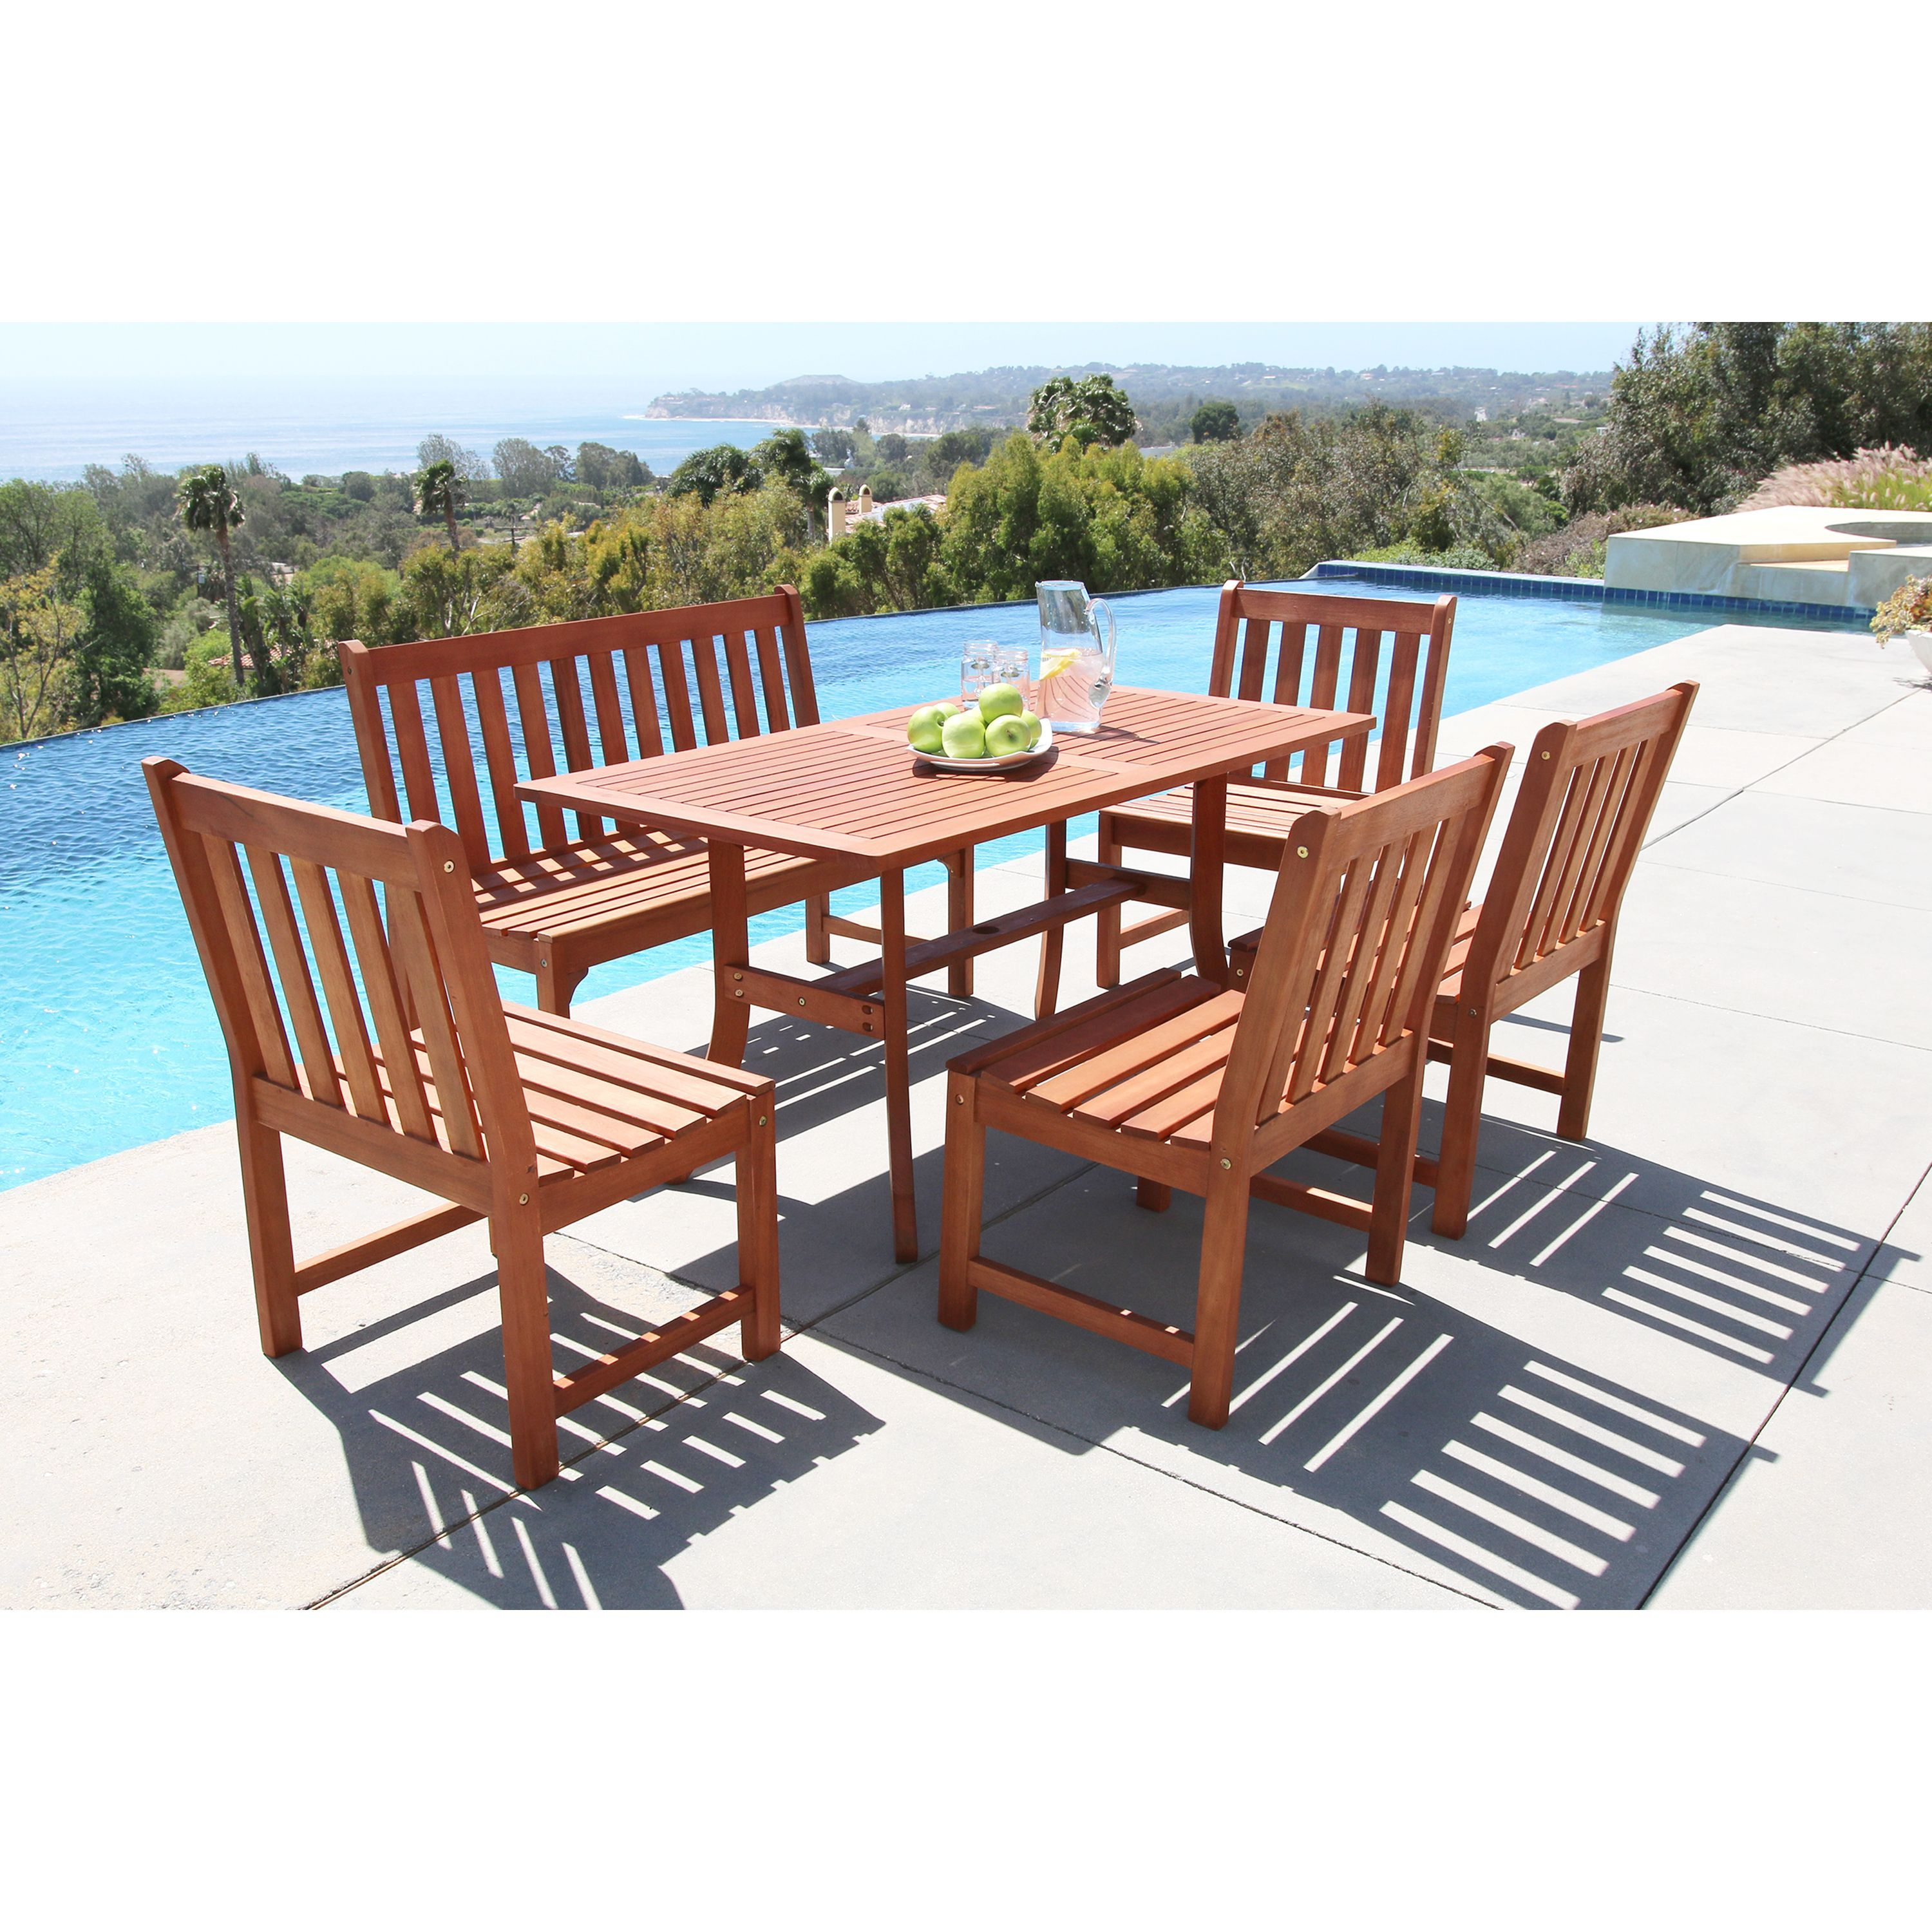 Malibu Eco Friendly 6 Piece Outdoor Hardwood Dining Set With Rectangle Table 4 Foot Bench And Armless Chairs Wood Patio Outdoor Furniture Sets Outdoor Dining Set